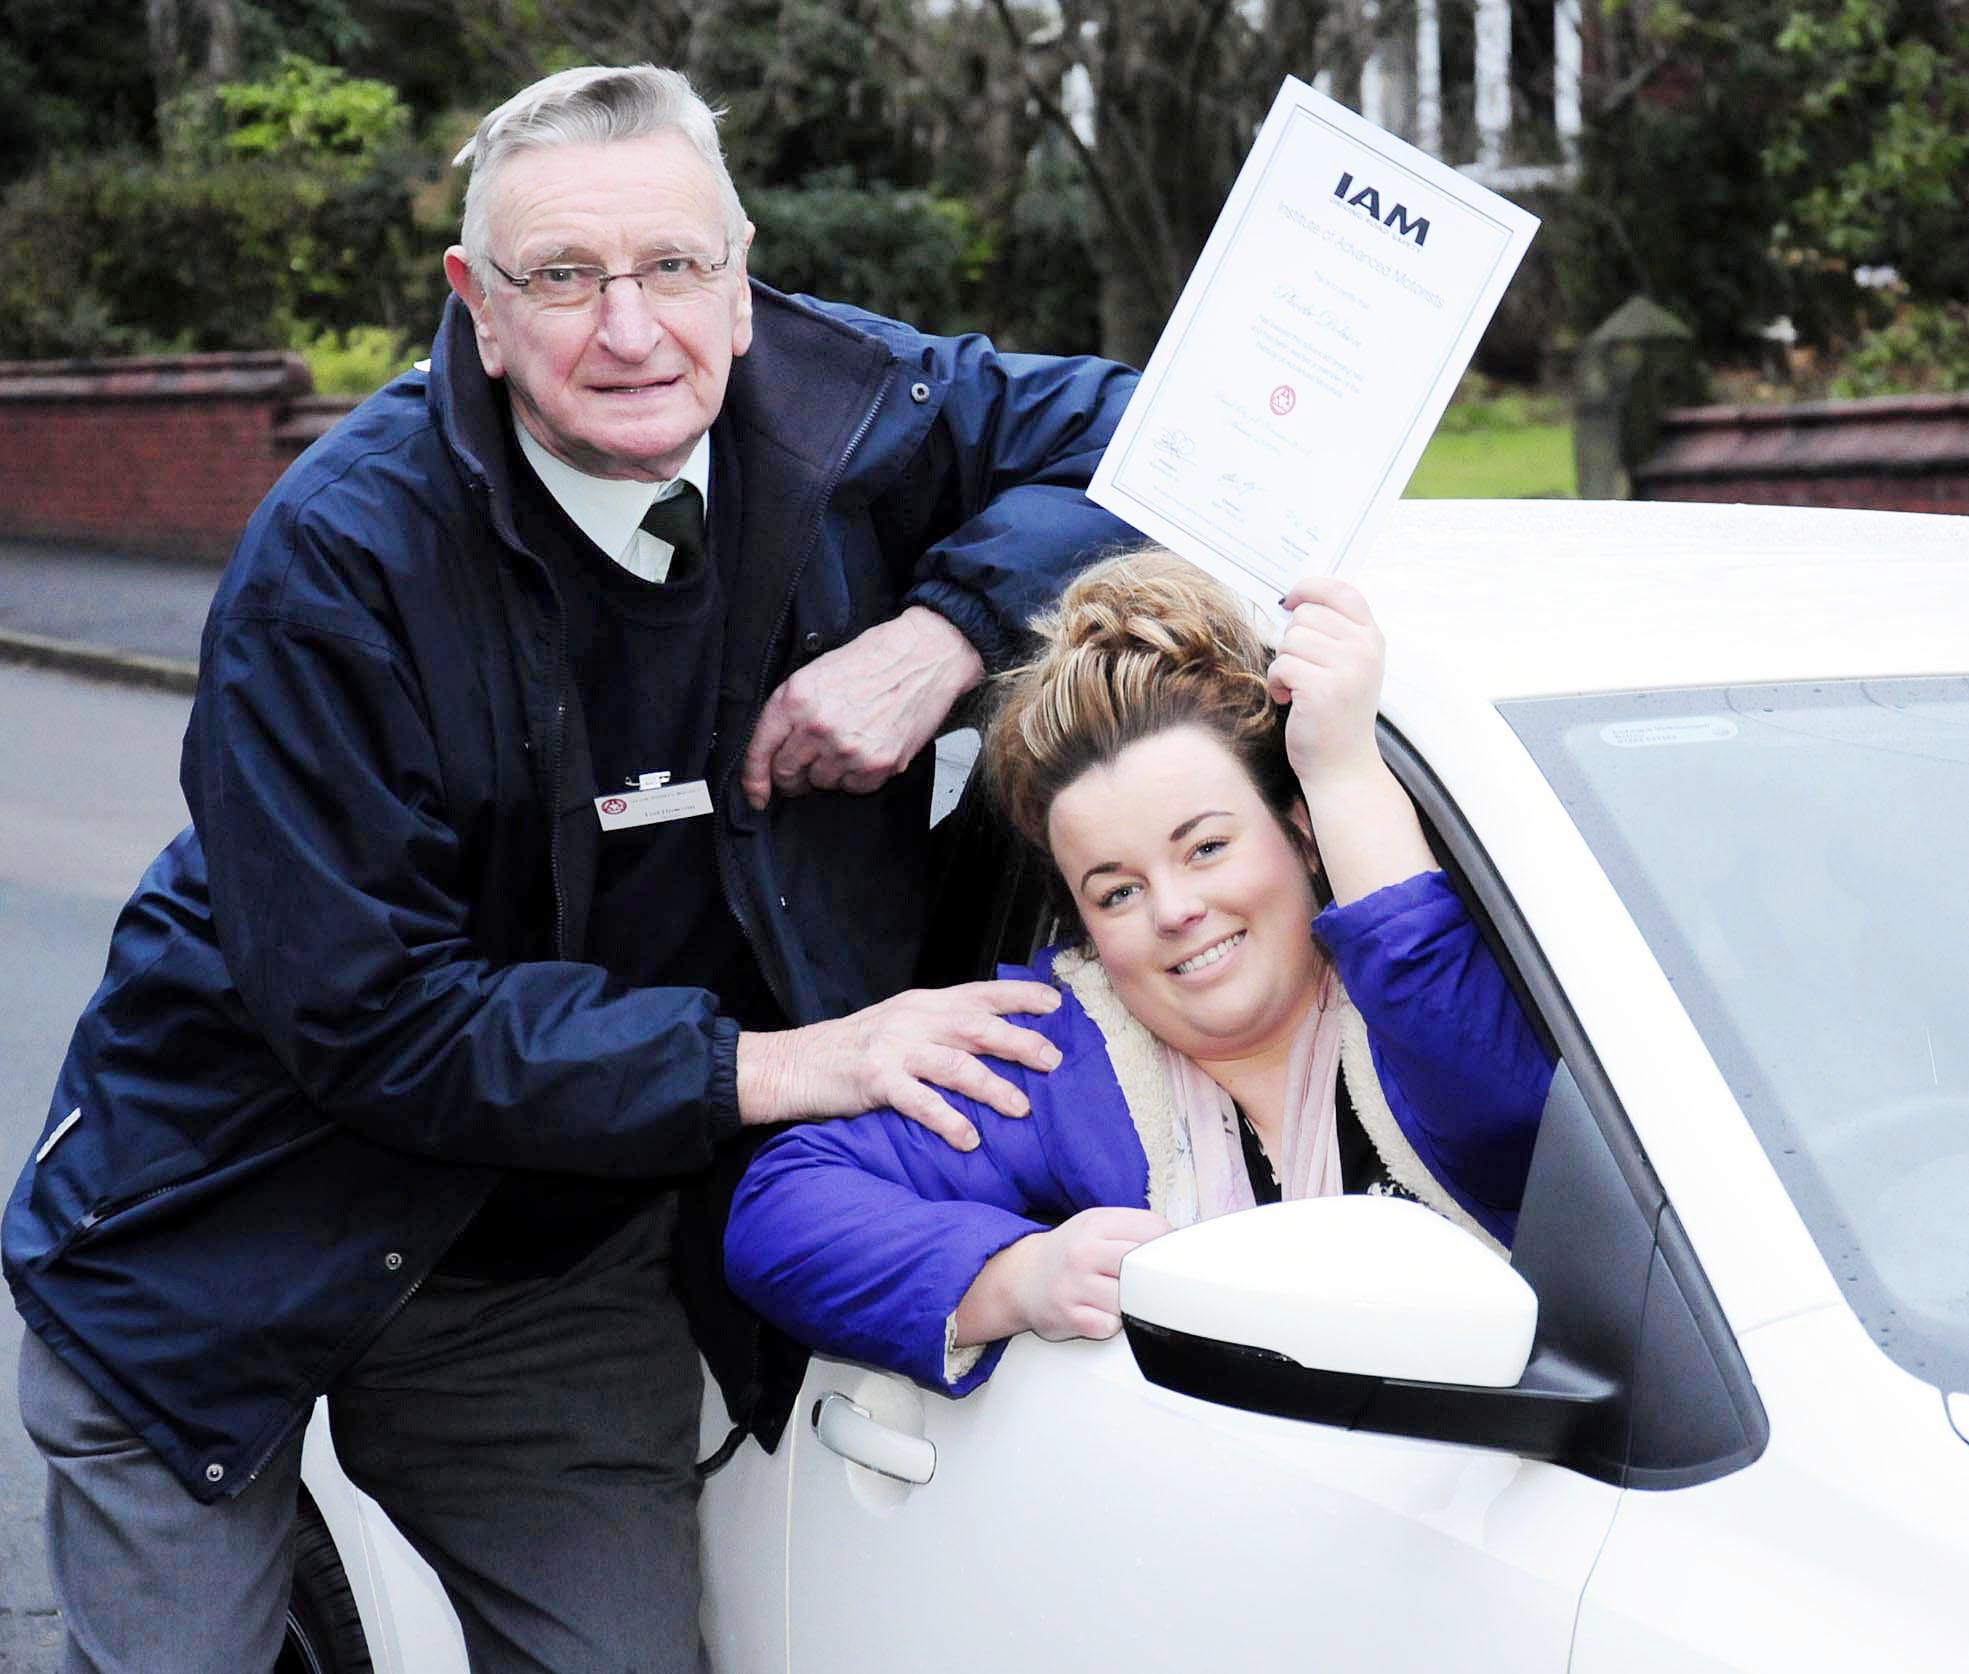 Phoebe Dobson waves her Advanced Motorist pass certificate congratulated by her grandad, Ted Rowson